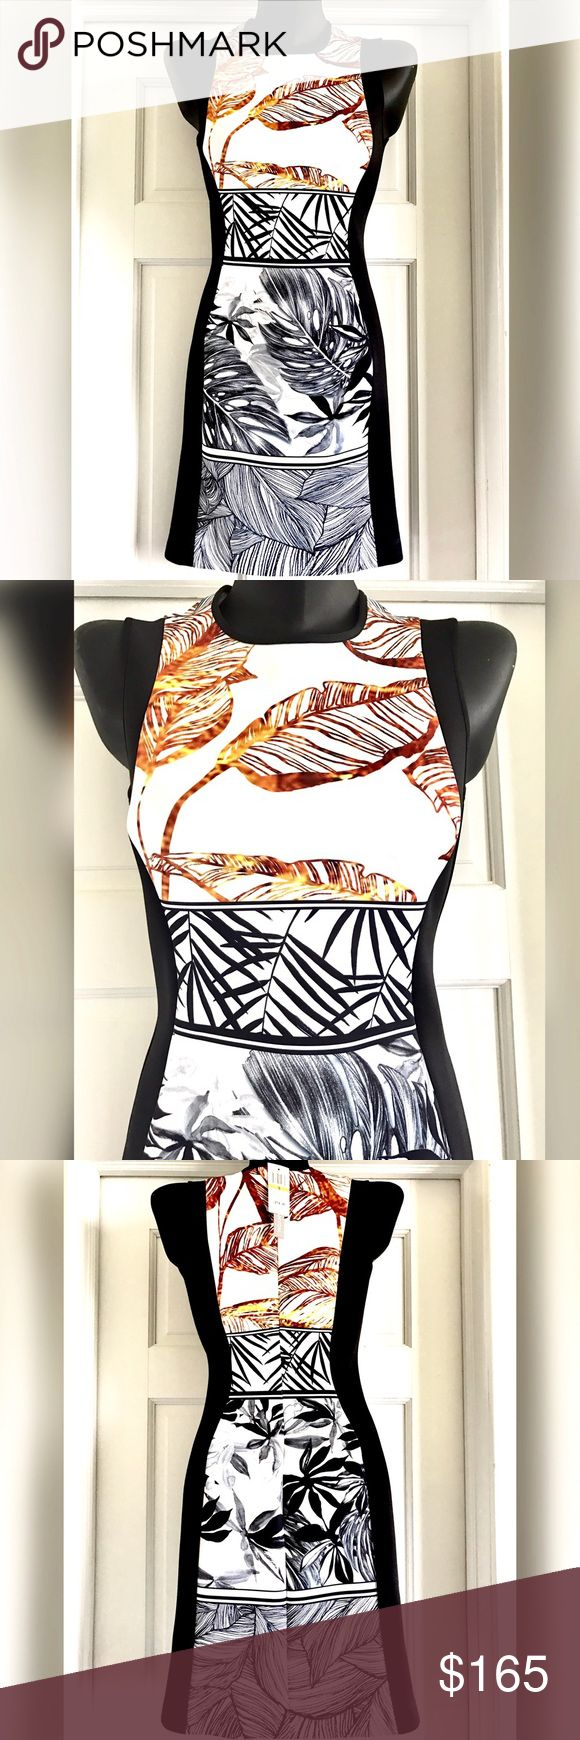 💜 Clover Canyon Sleeveless Print Dress Size S Stunning Print Dress from Clover Canyon.  Size S.  brand new with tags.  Black and white with dark gold/ brown print.  Leaves Print. 90% Polyester 10% Spandex.  Hand Wash. Clover Canyon Dresses